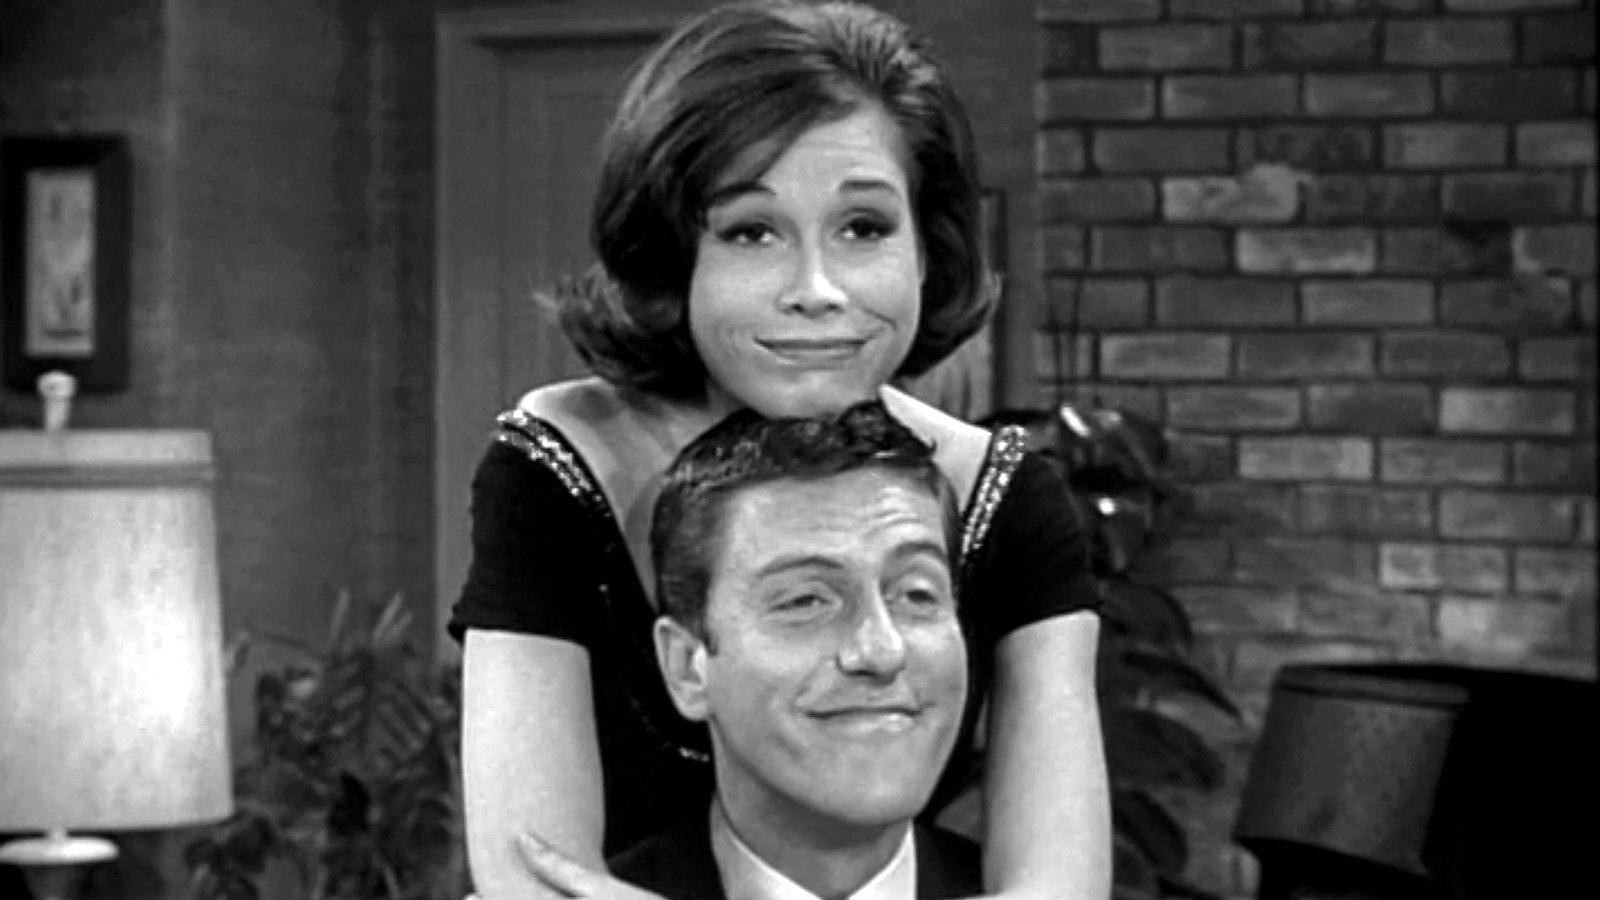 Dick Van Dyke and Mary Tyler Moore, the stars of The Dick Van Dyke Show, one of the 1960s most charming TV shows